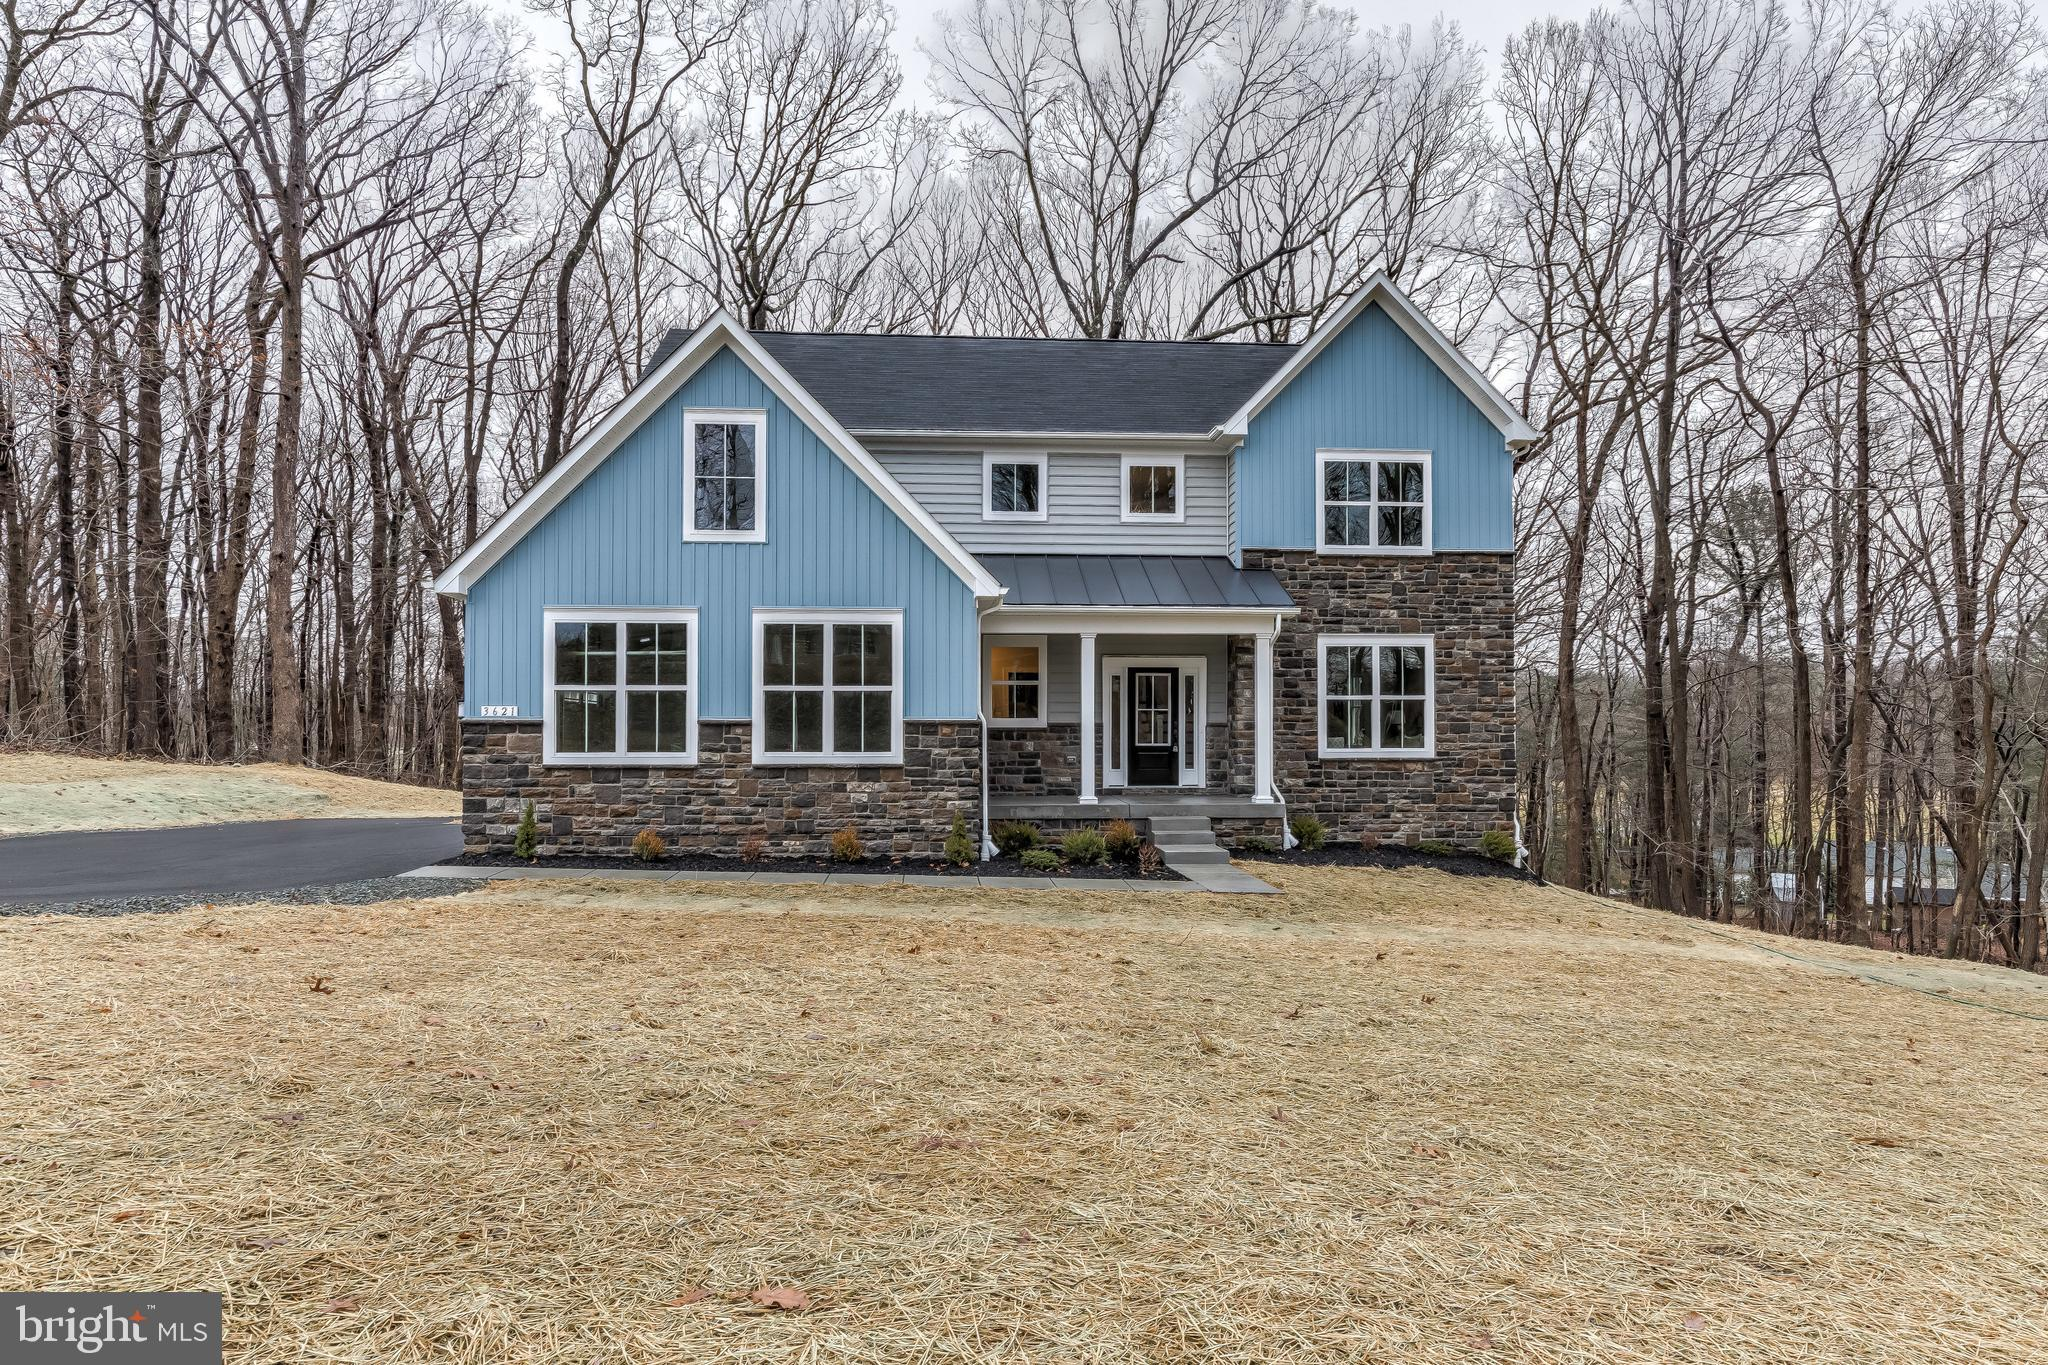 5221 FORGE ROAD, WHITE MARSH, MD 21162